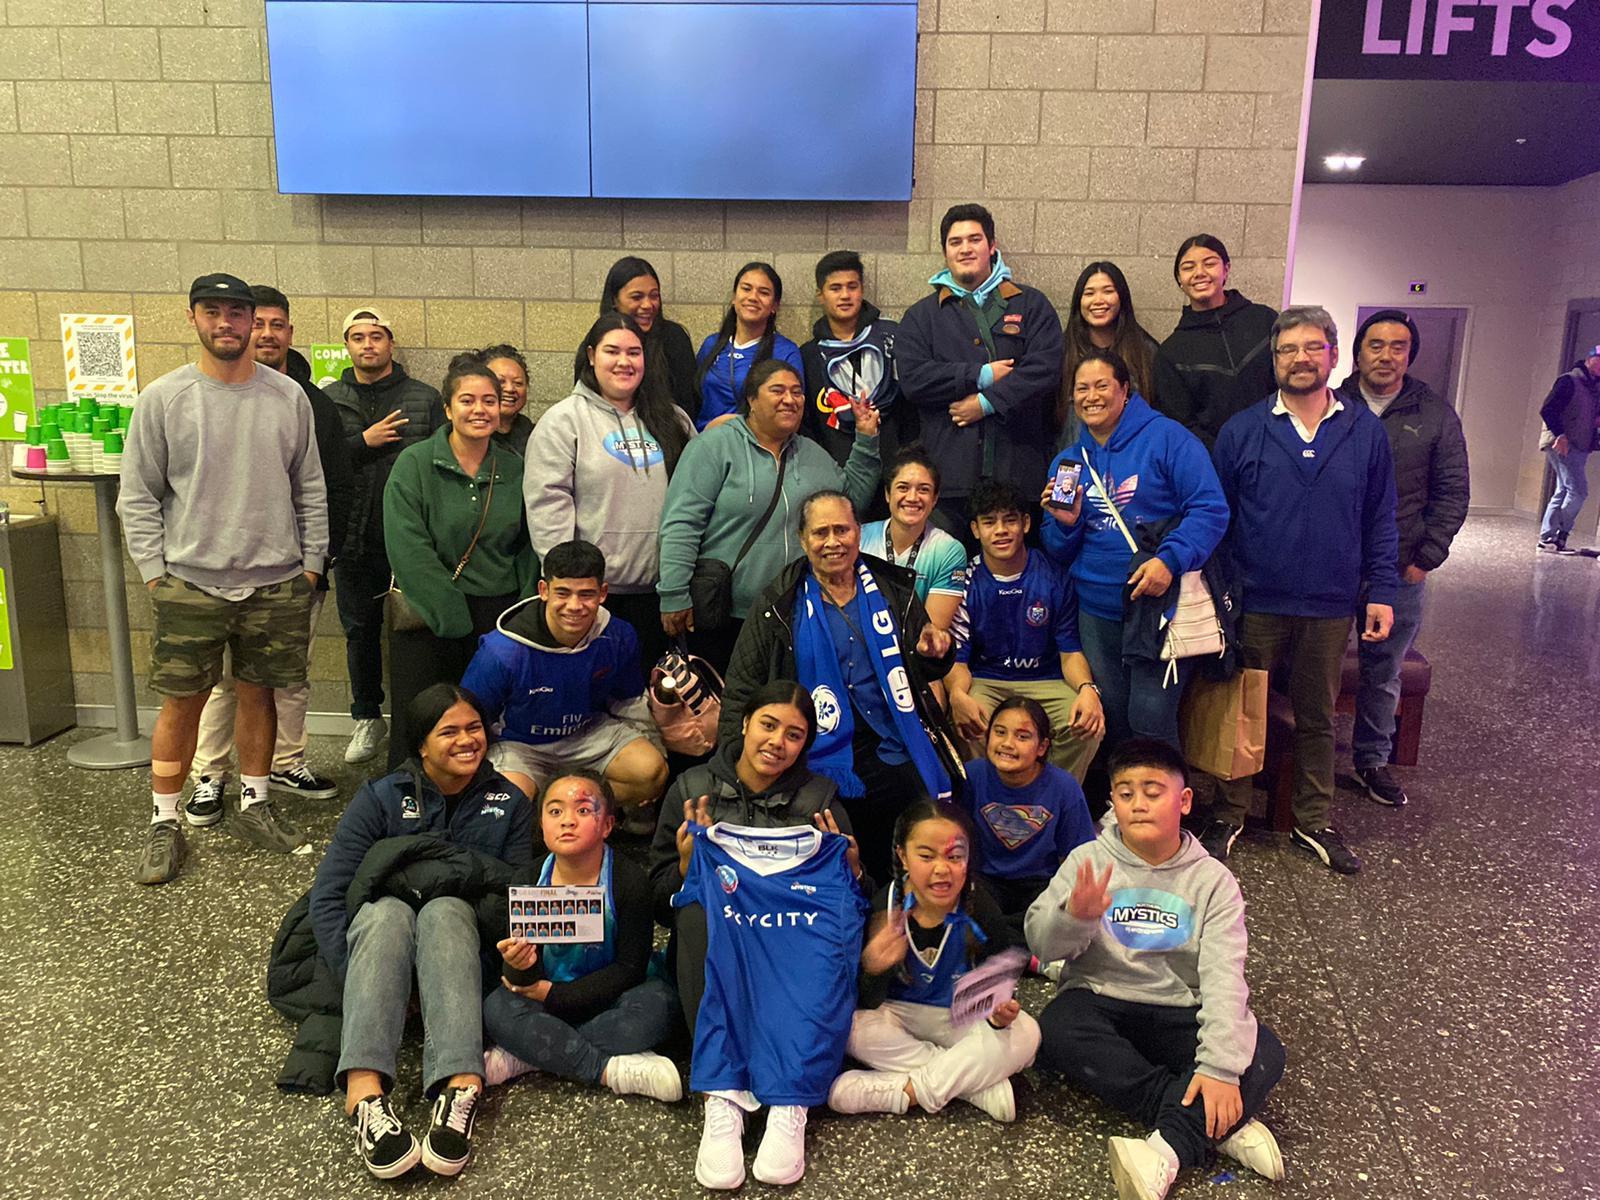 Sulu and family, celebrating her team's win at the 2021 ANZ Premiership grand final at Auckland's Spark Arena in early August. (Photo supplied)